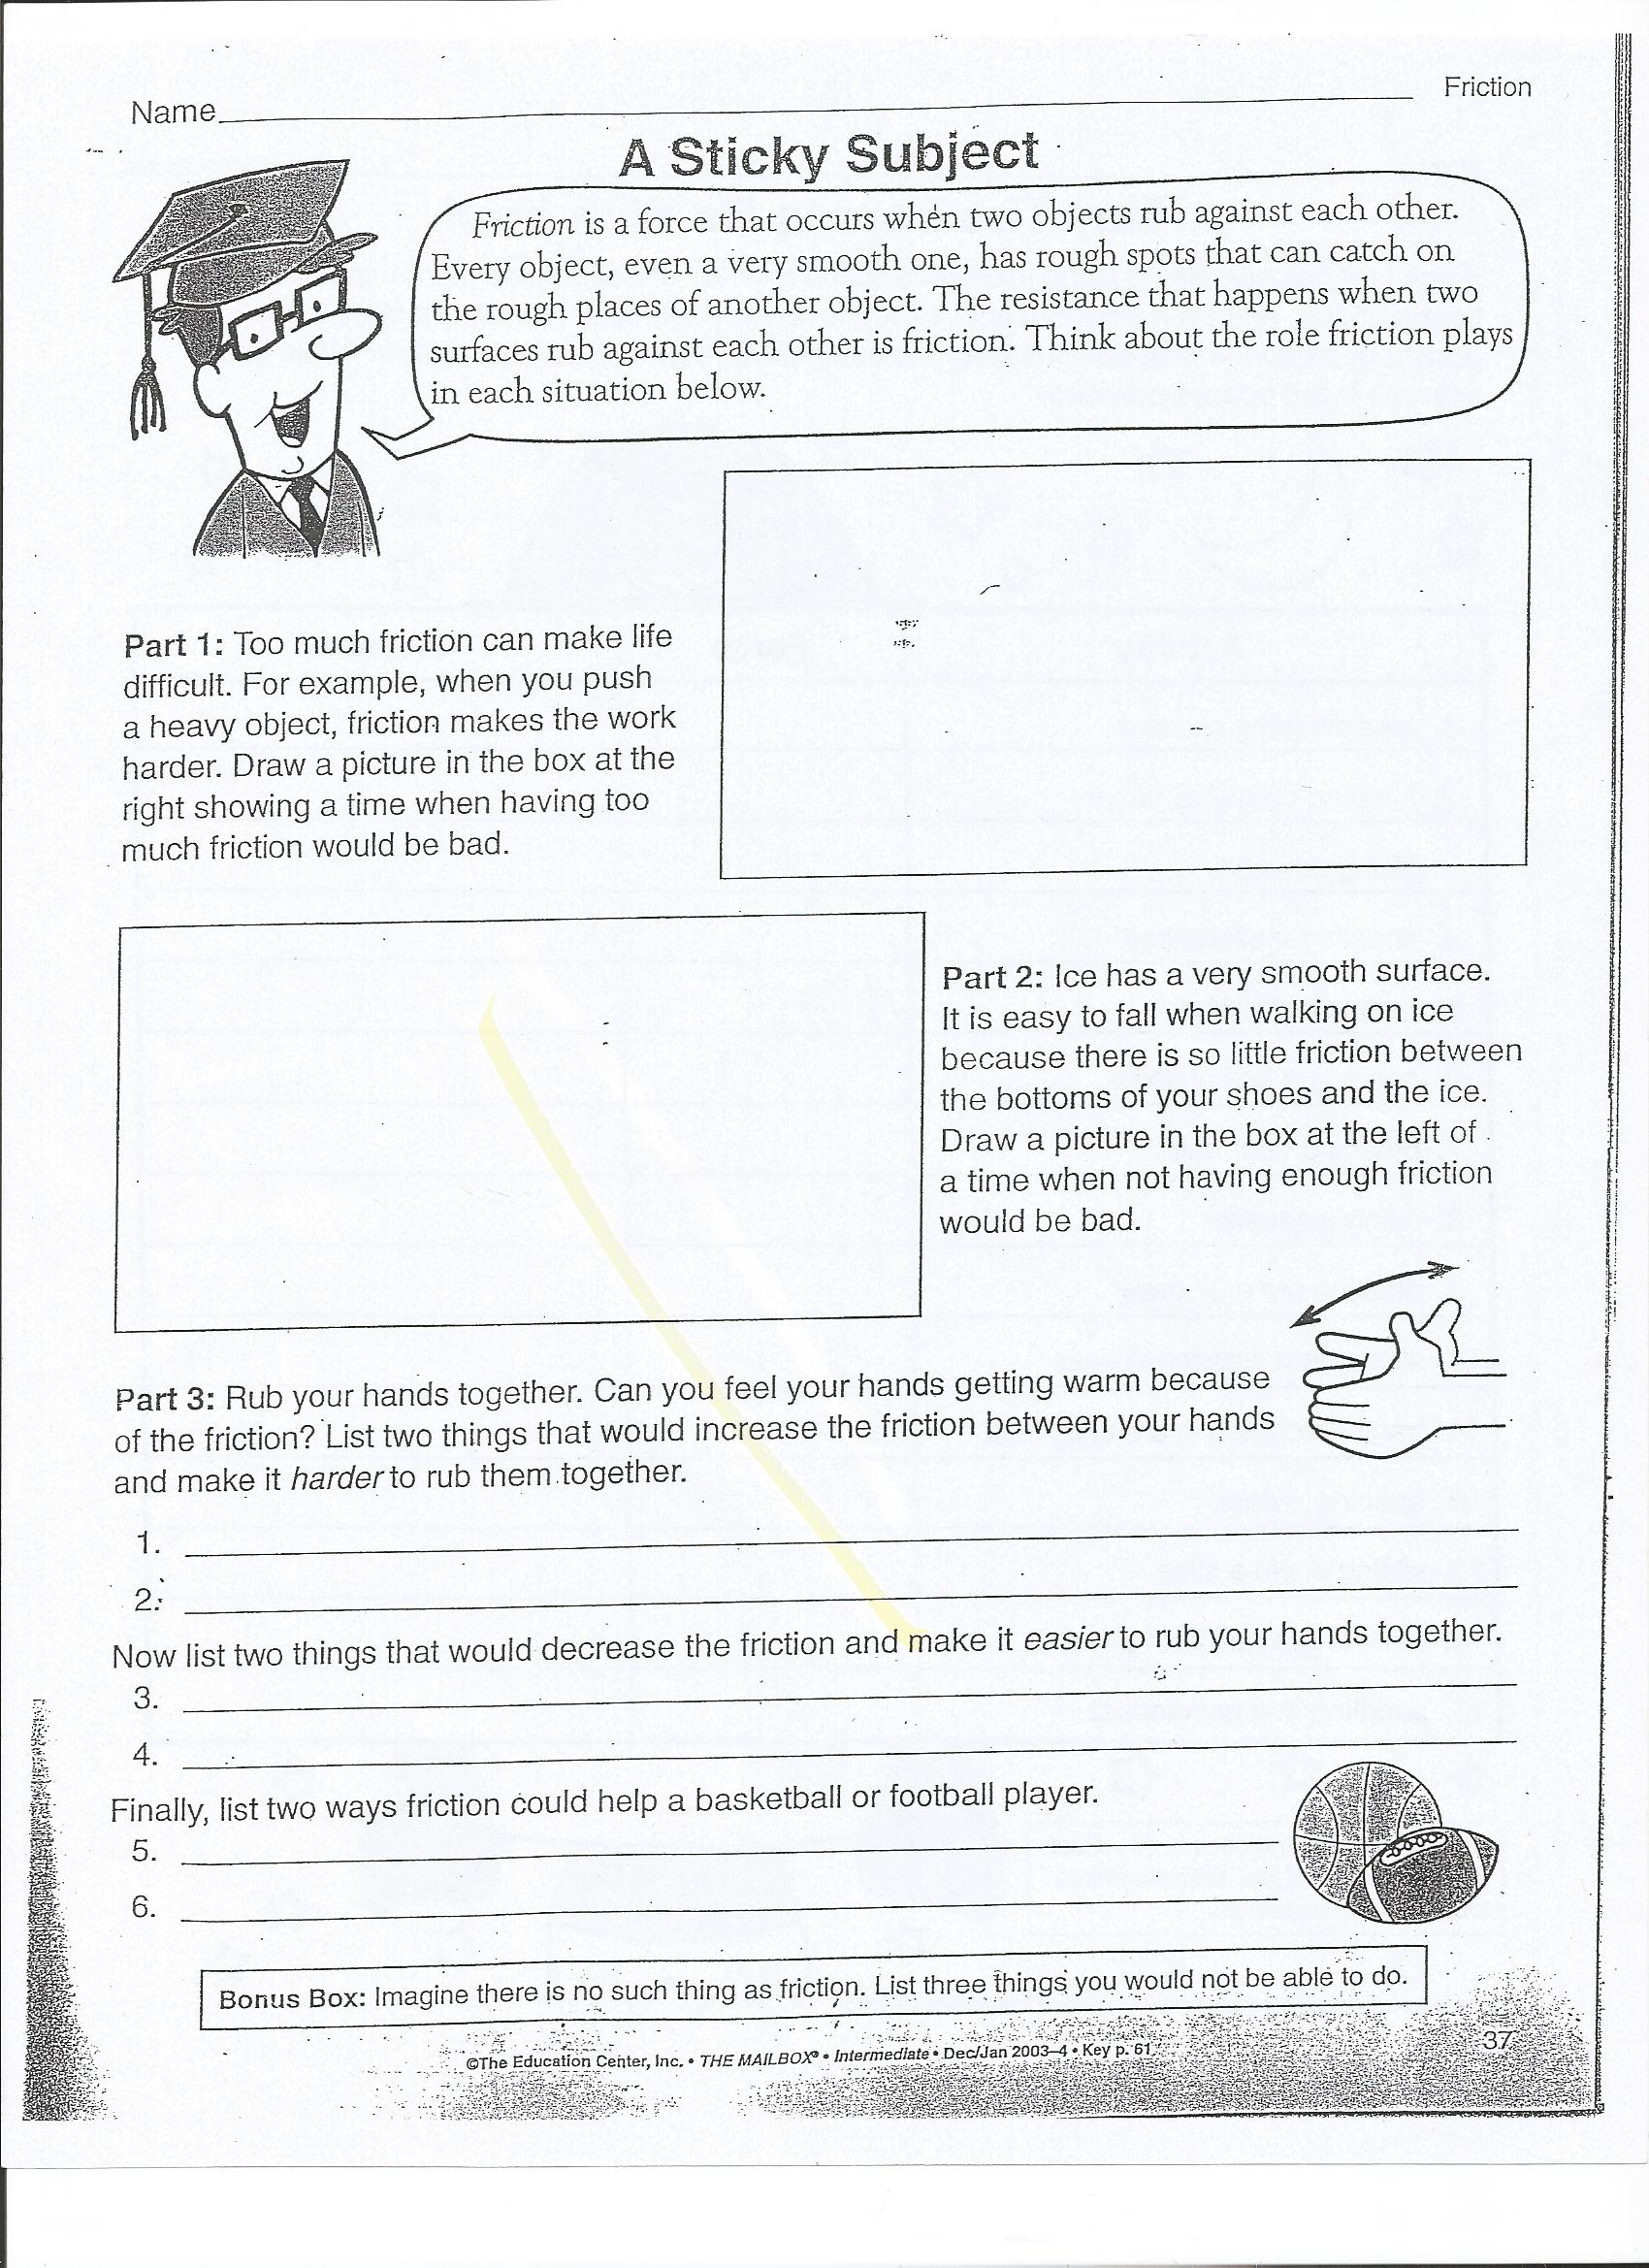 Friction Worksheets humorholics – Friction Worksheet